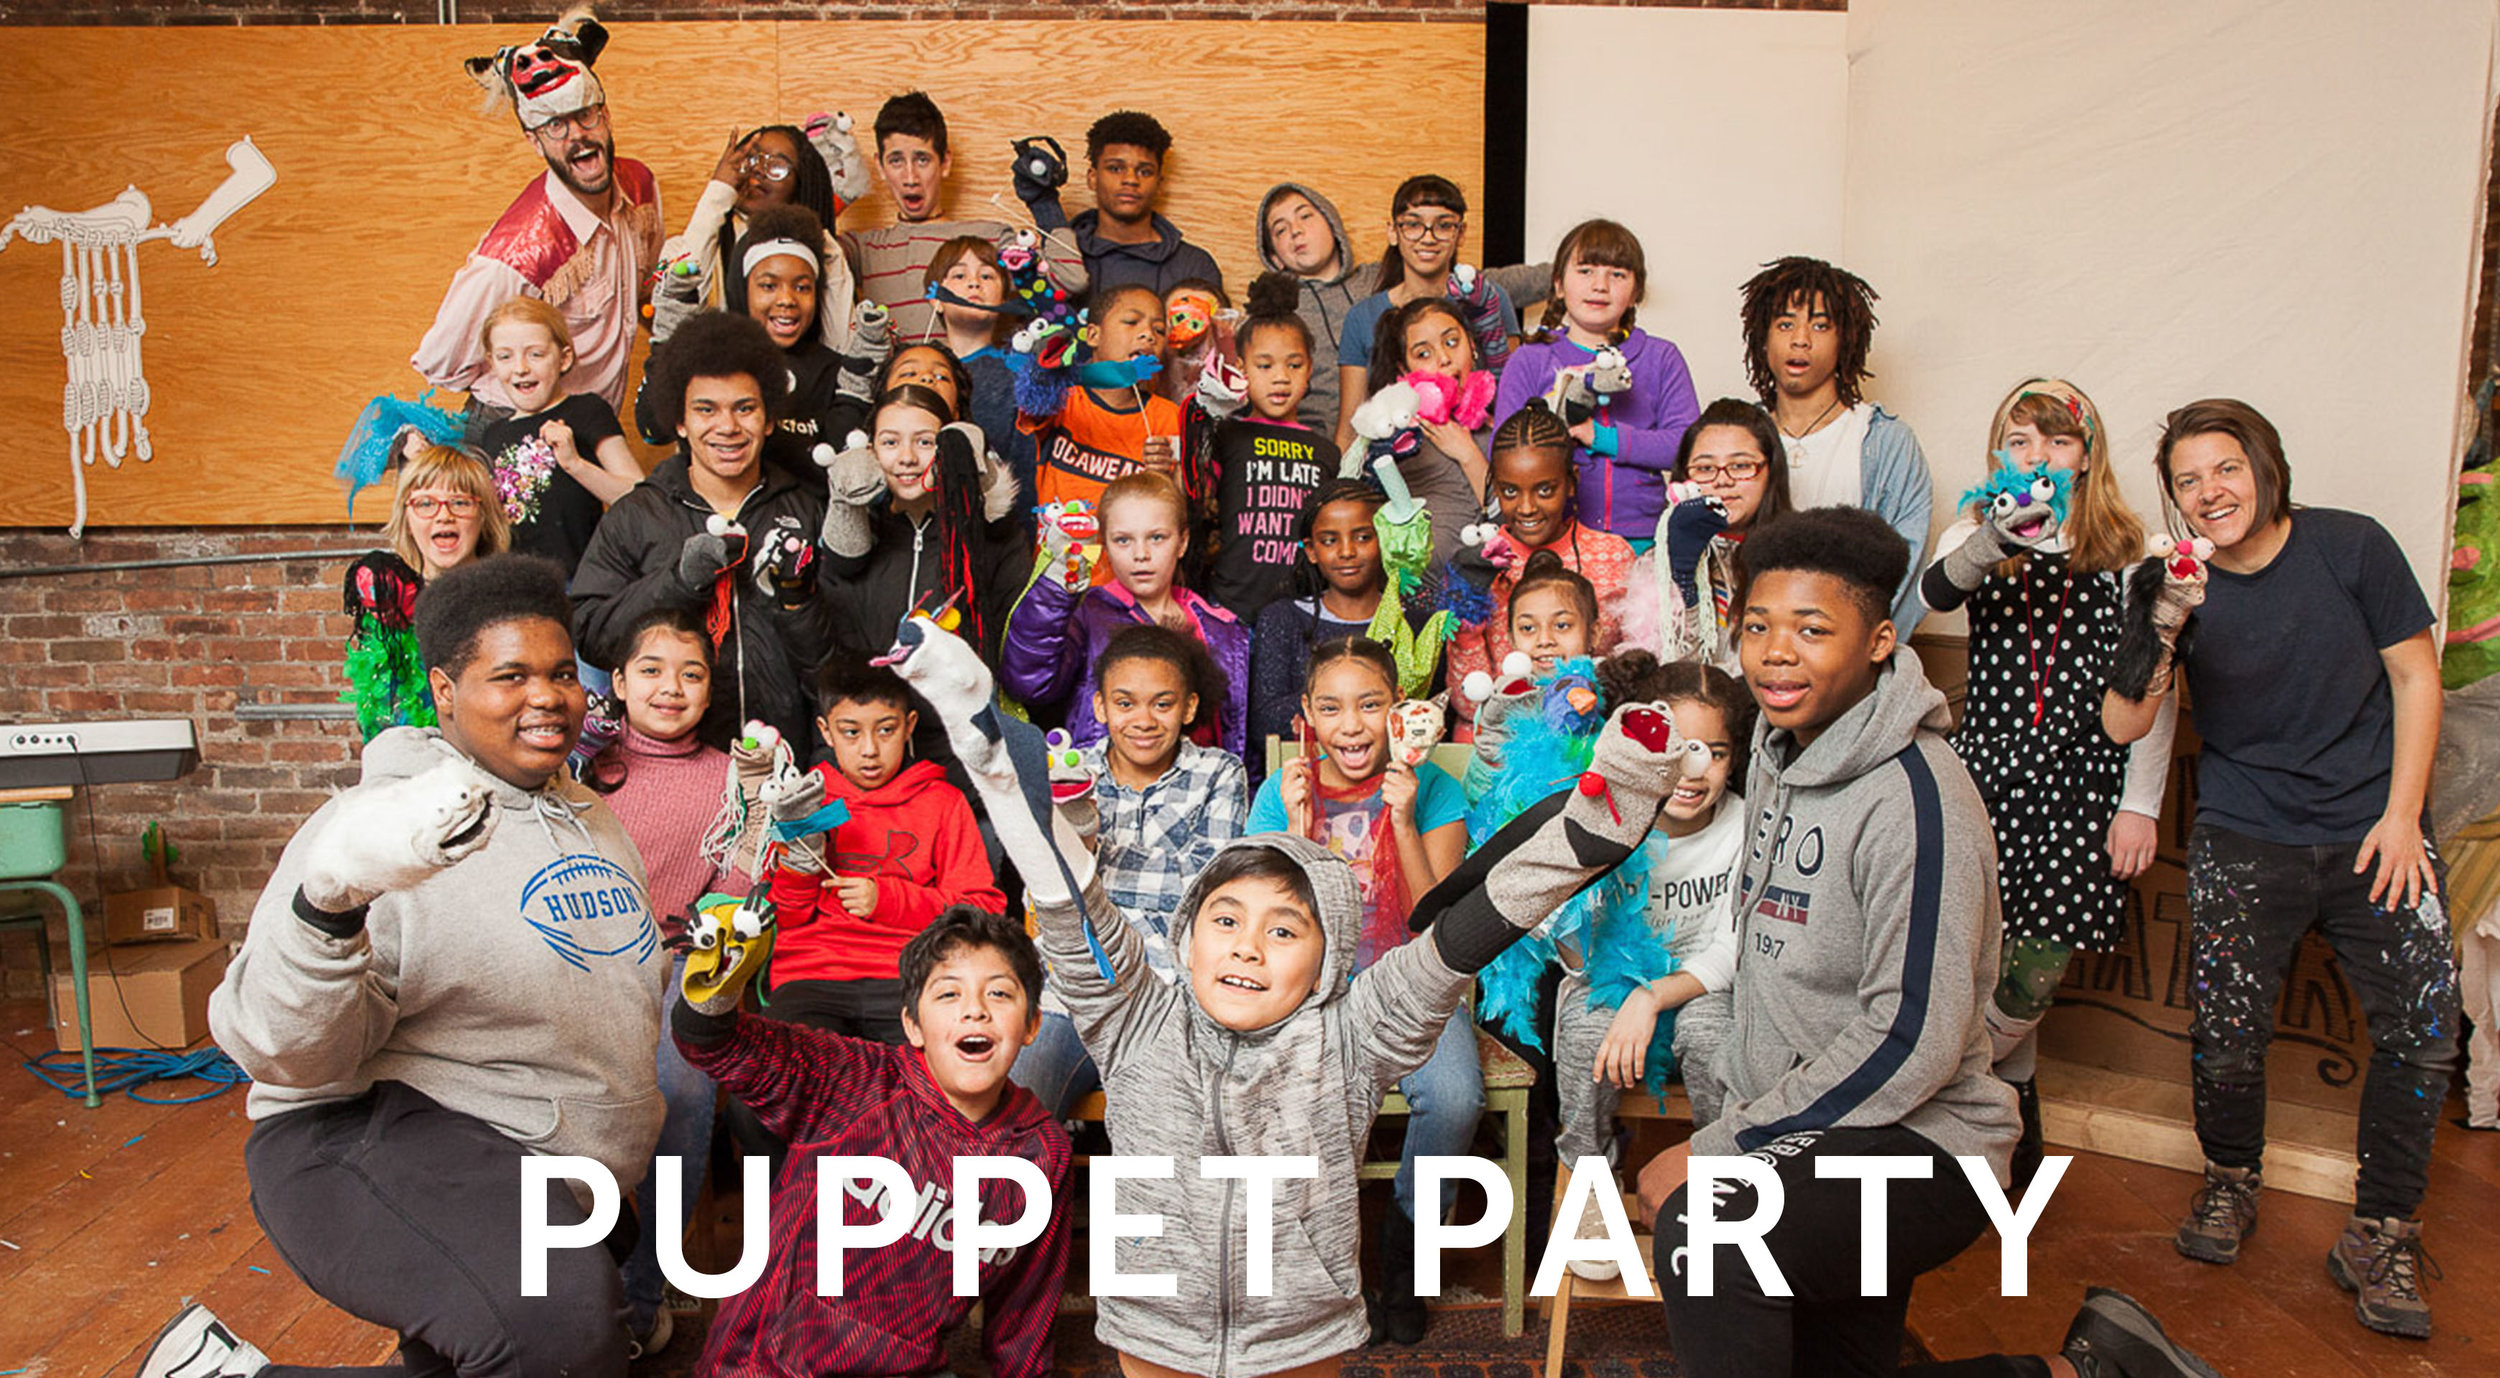 PuppetParty2.jpg